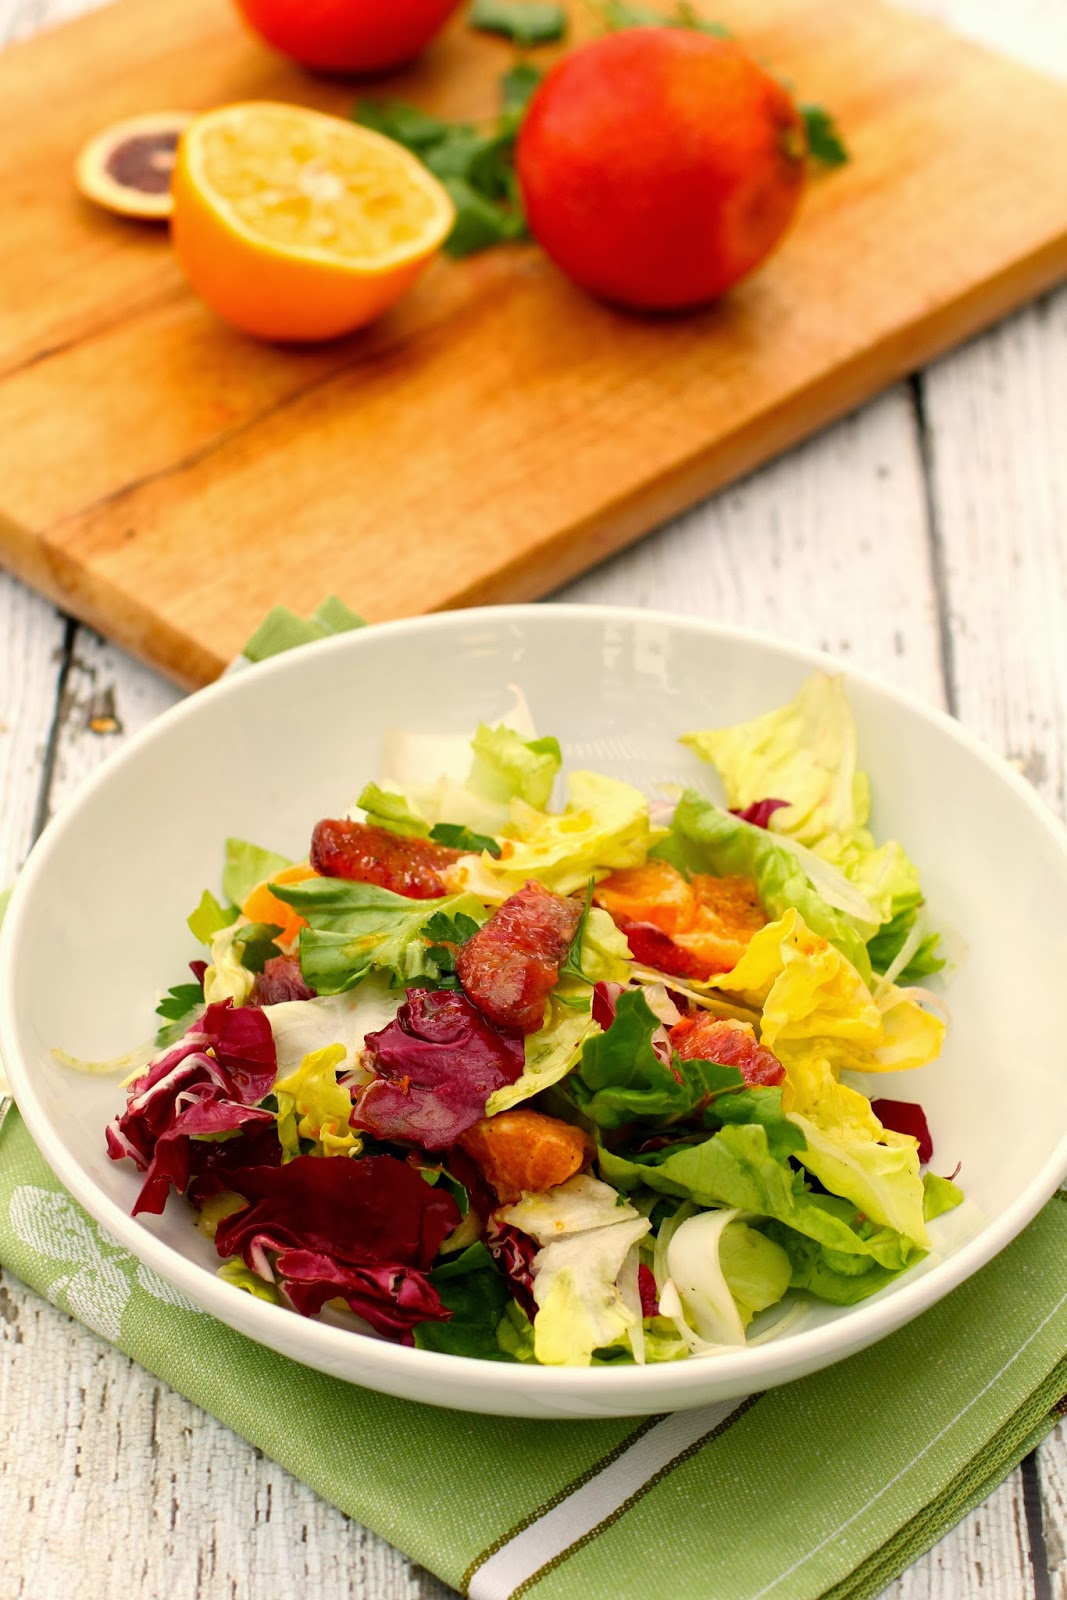 Blood Orange, Butter Lettuce, Radicchio, and Endive Salad with Fennel and Tangelos